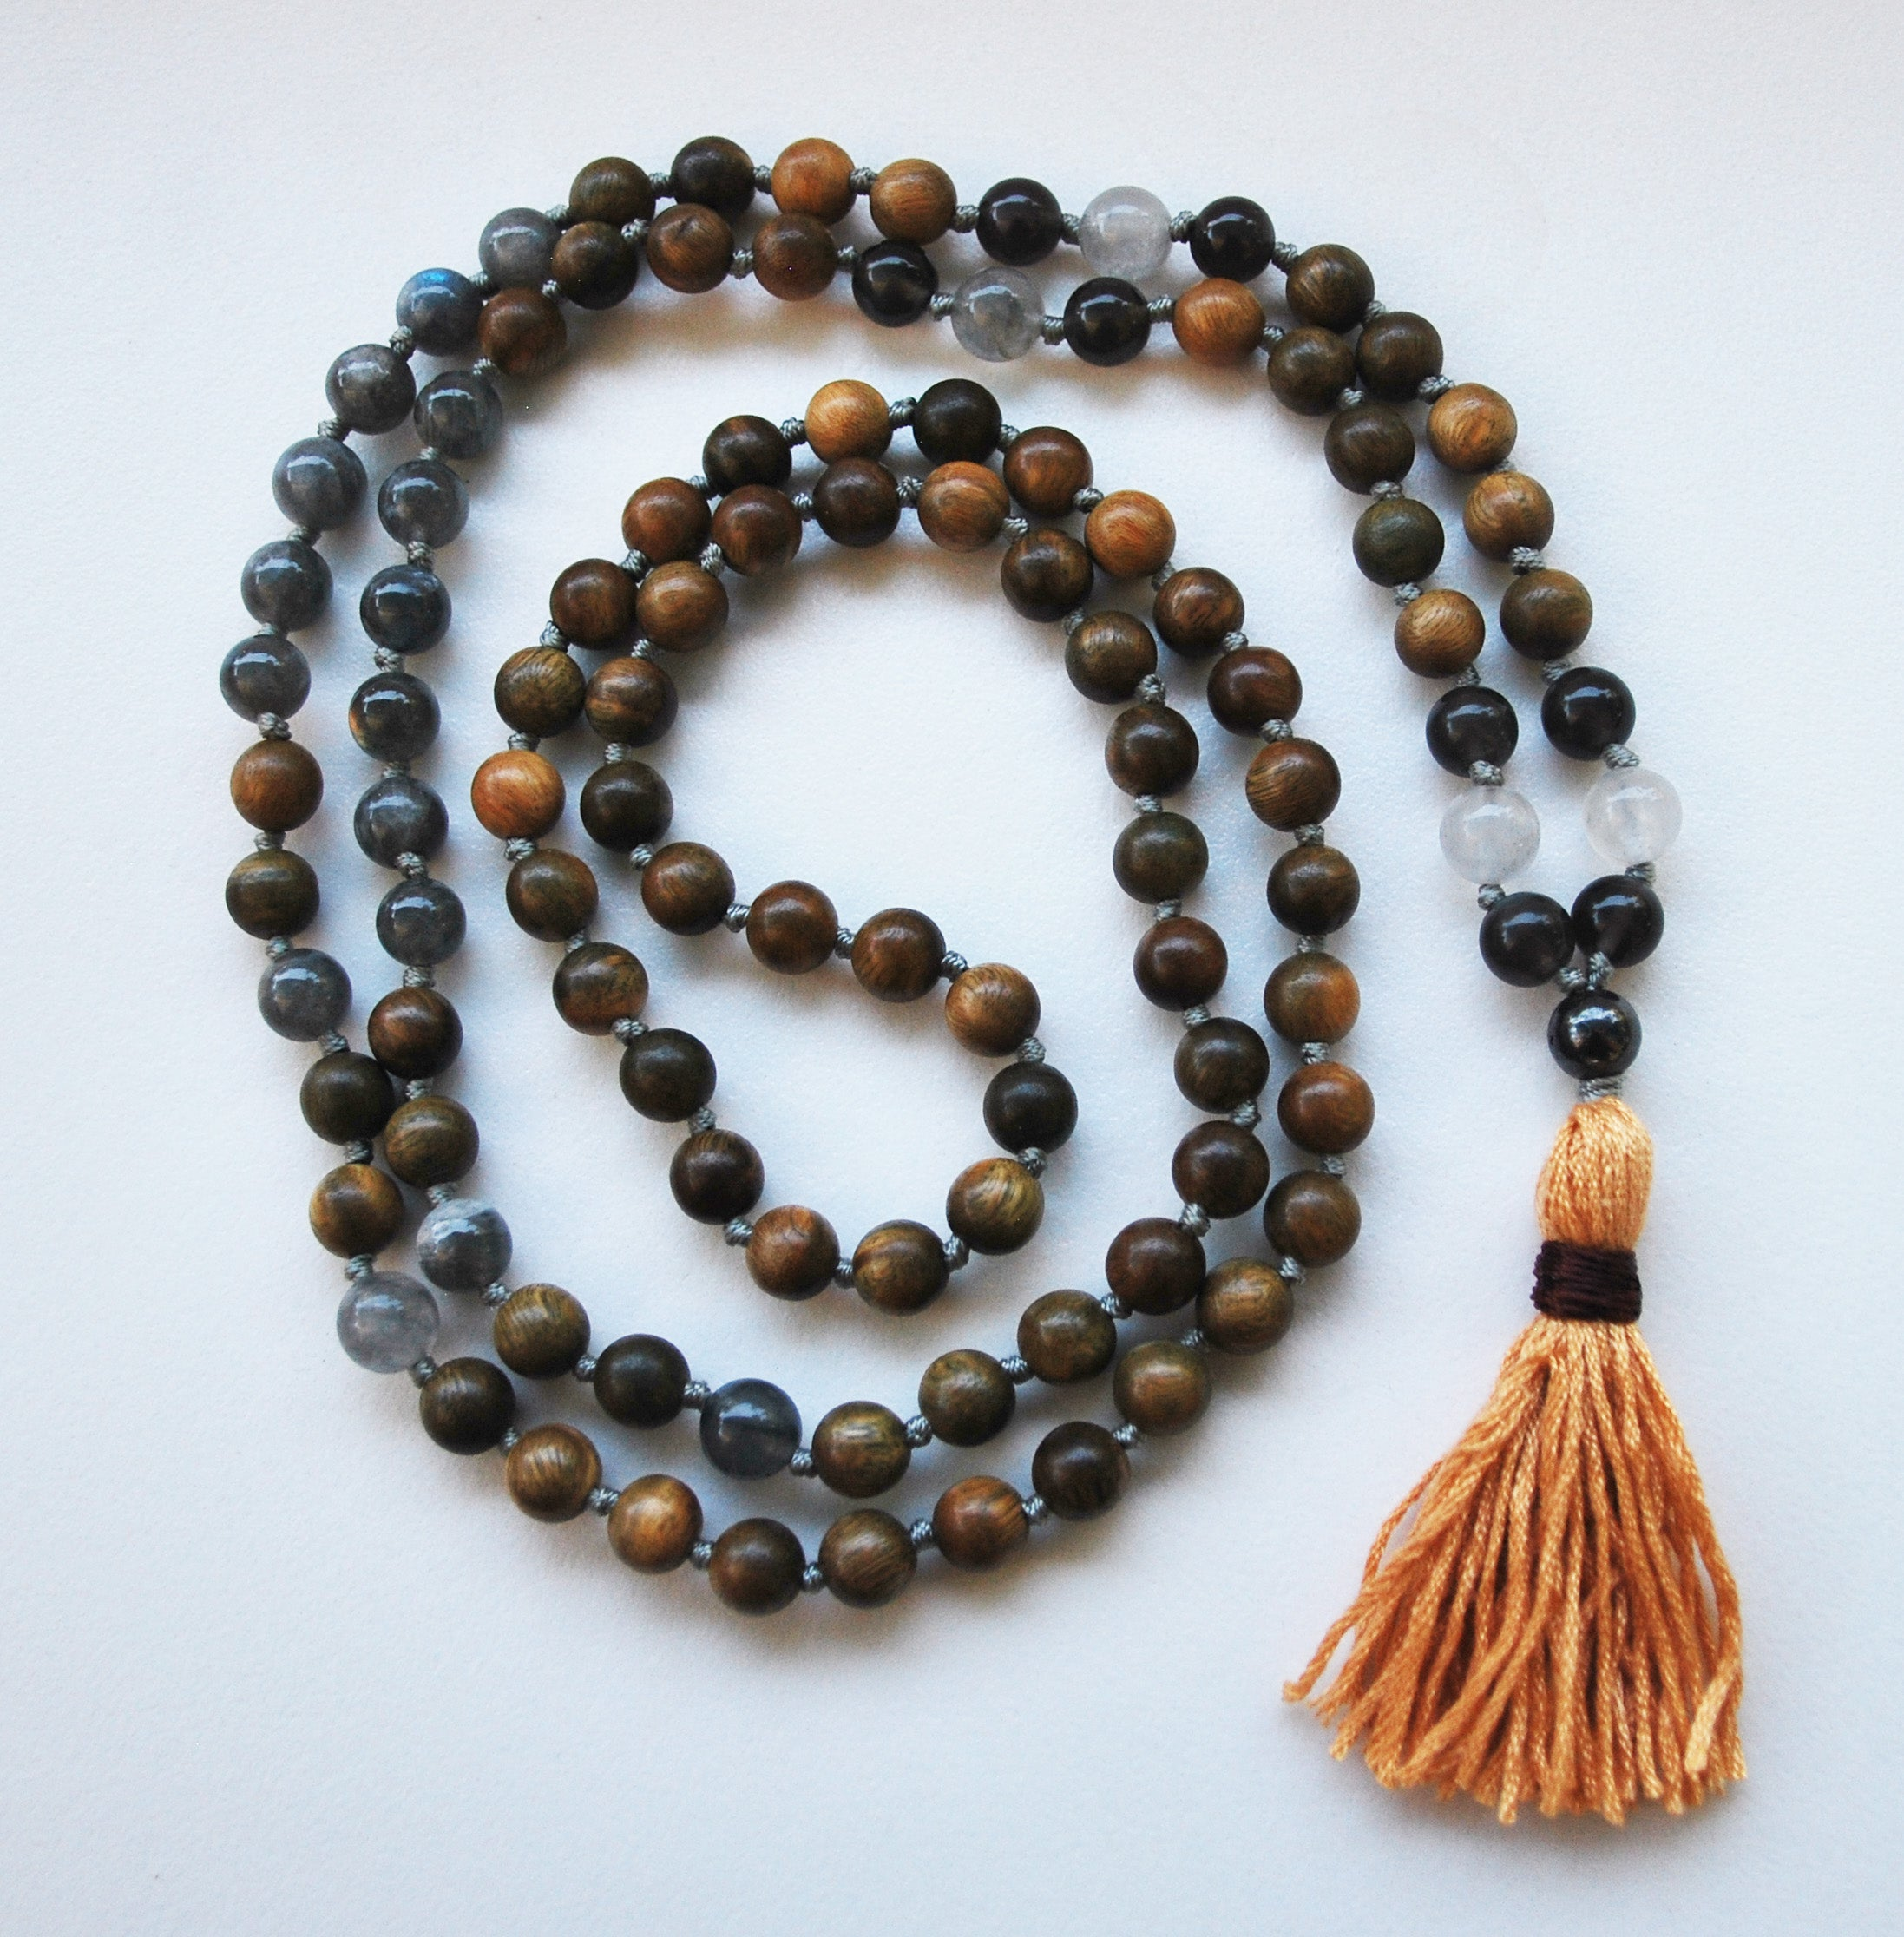 8mm Green Sandalwood & Labradorite 108 Knotted Mala Necklace with Cotton Tassel